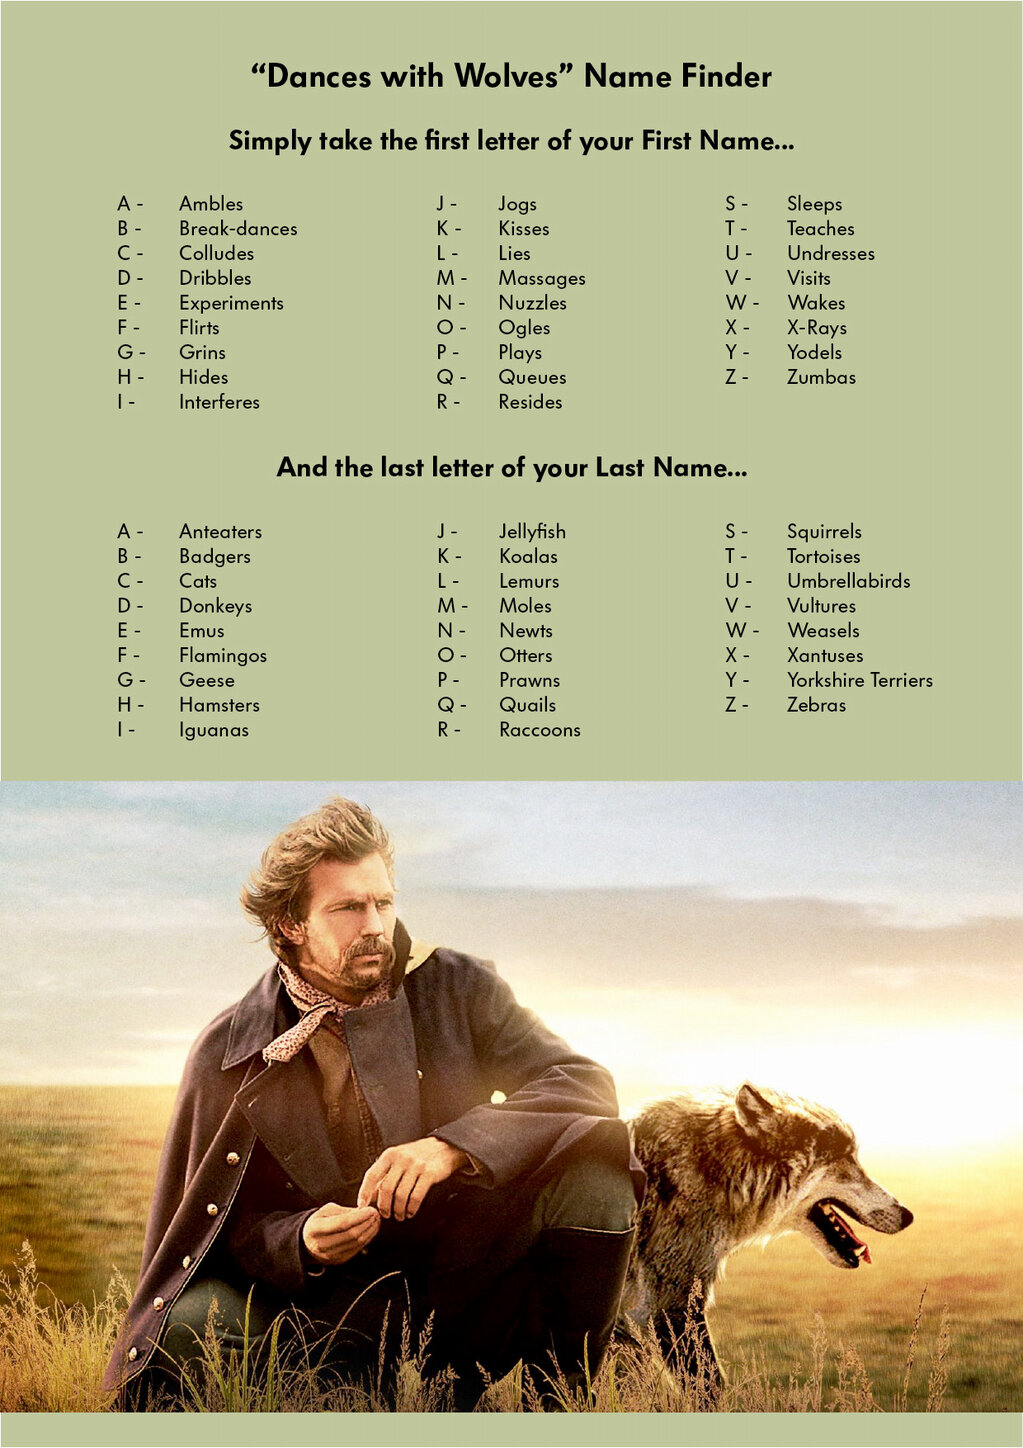 Dances With Wolves Name Finder The Poke